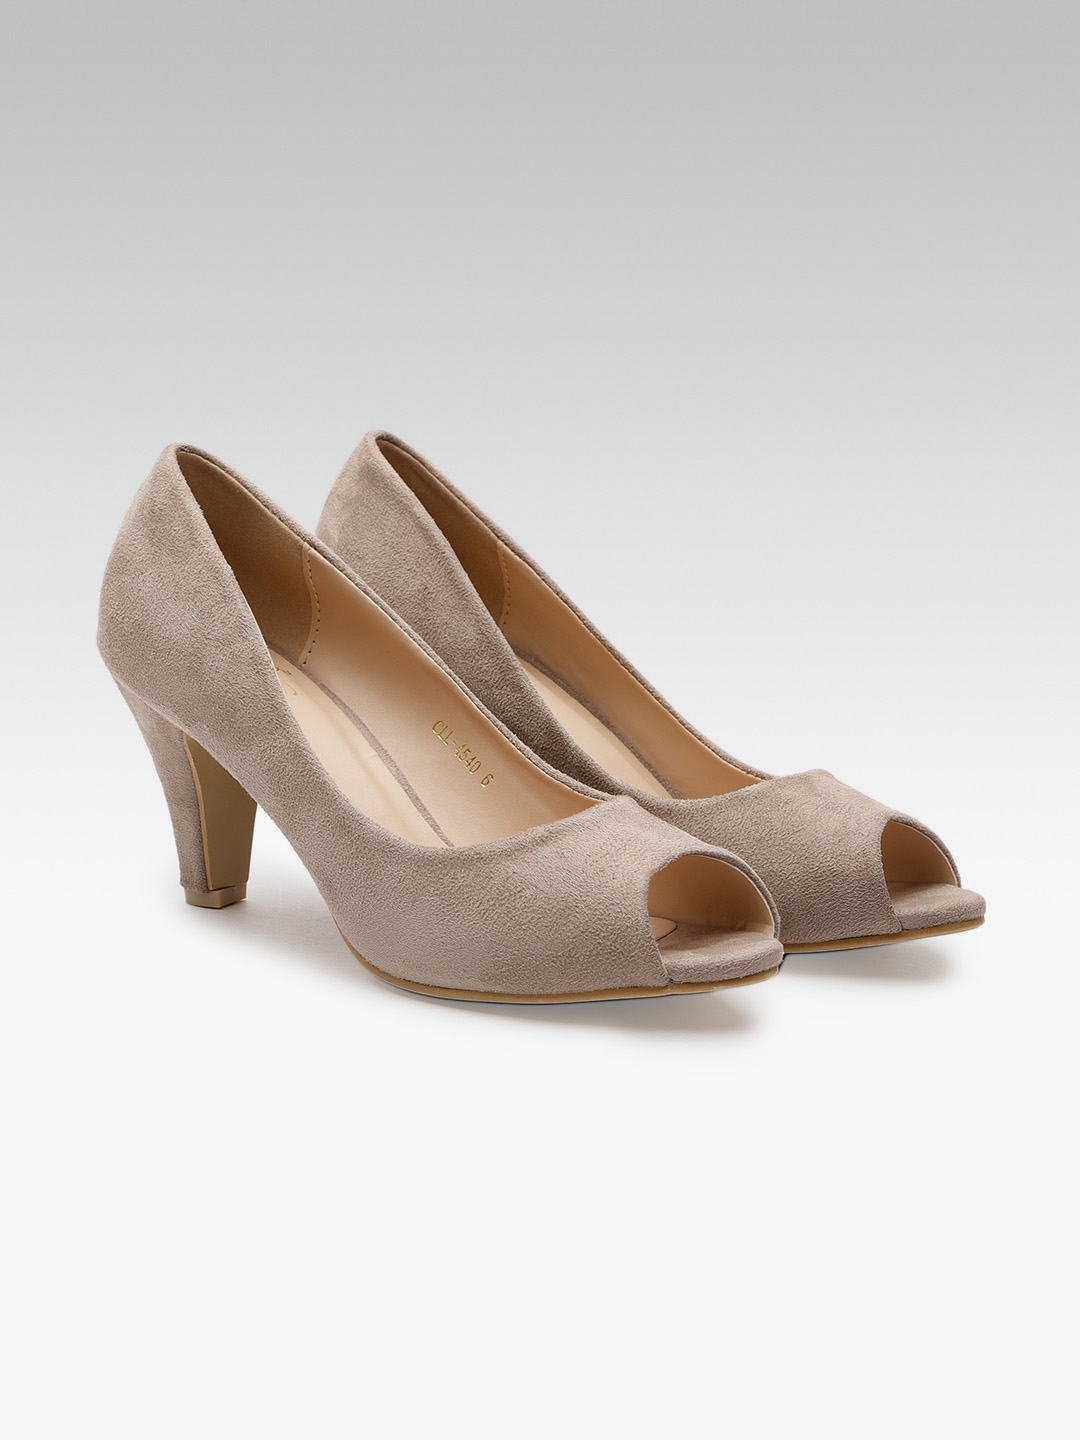 801772ce4b Buy Carlton London Women Taupe Solid Peep Toes - Heels for Women ...